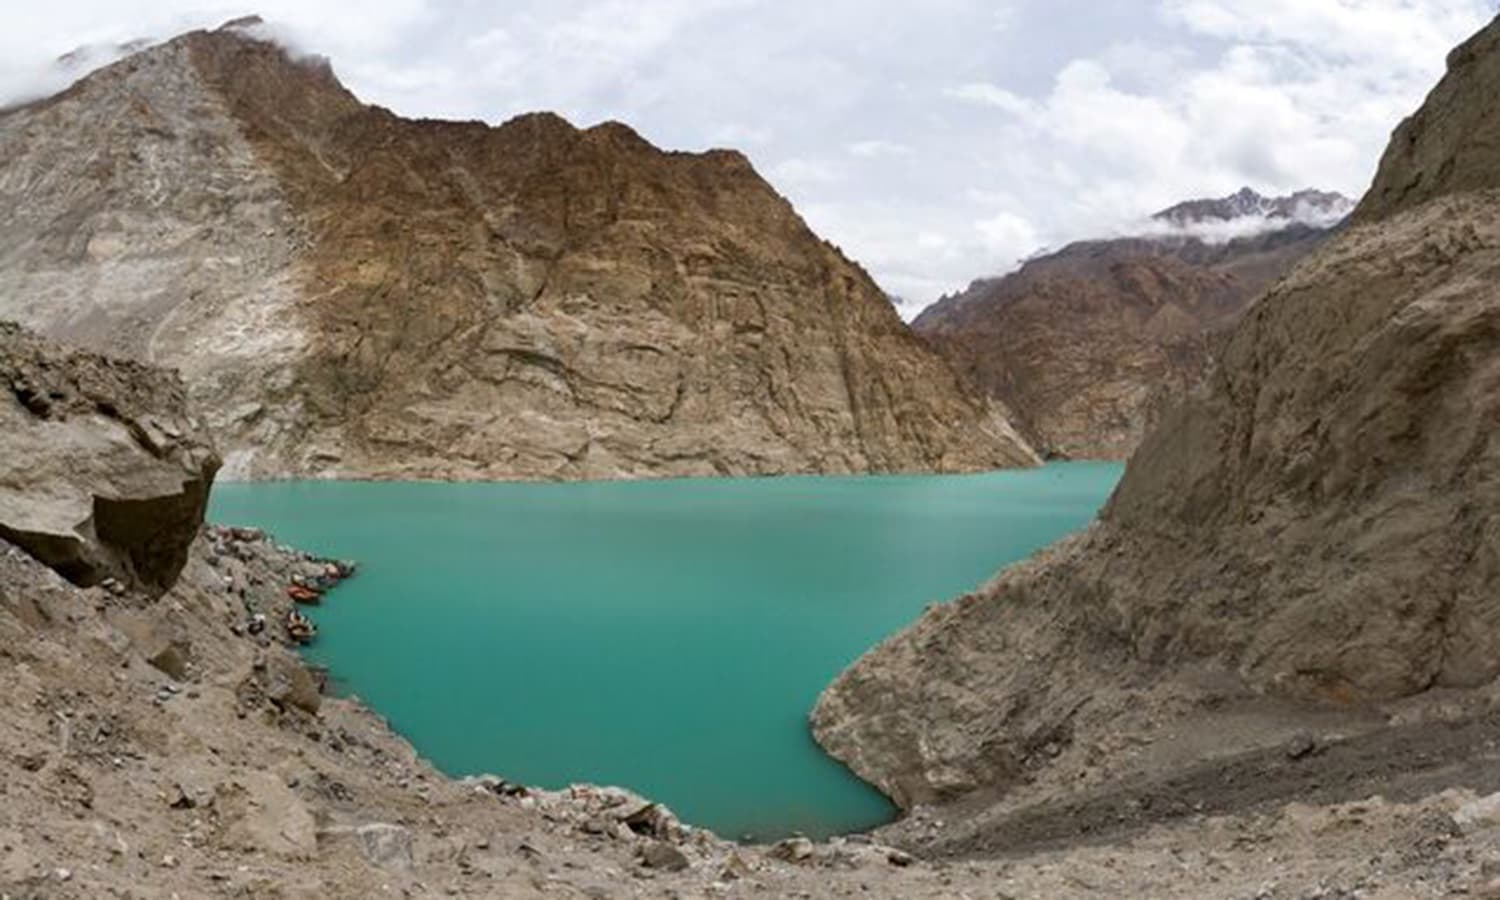 Attabad Lake in Gojal in Upper Hunza. —Photo by Ghulam Rasool